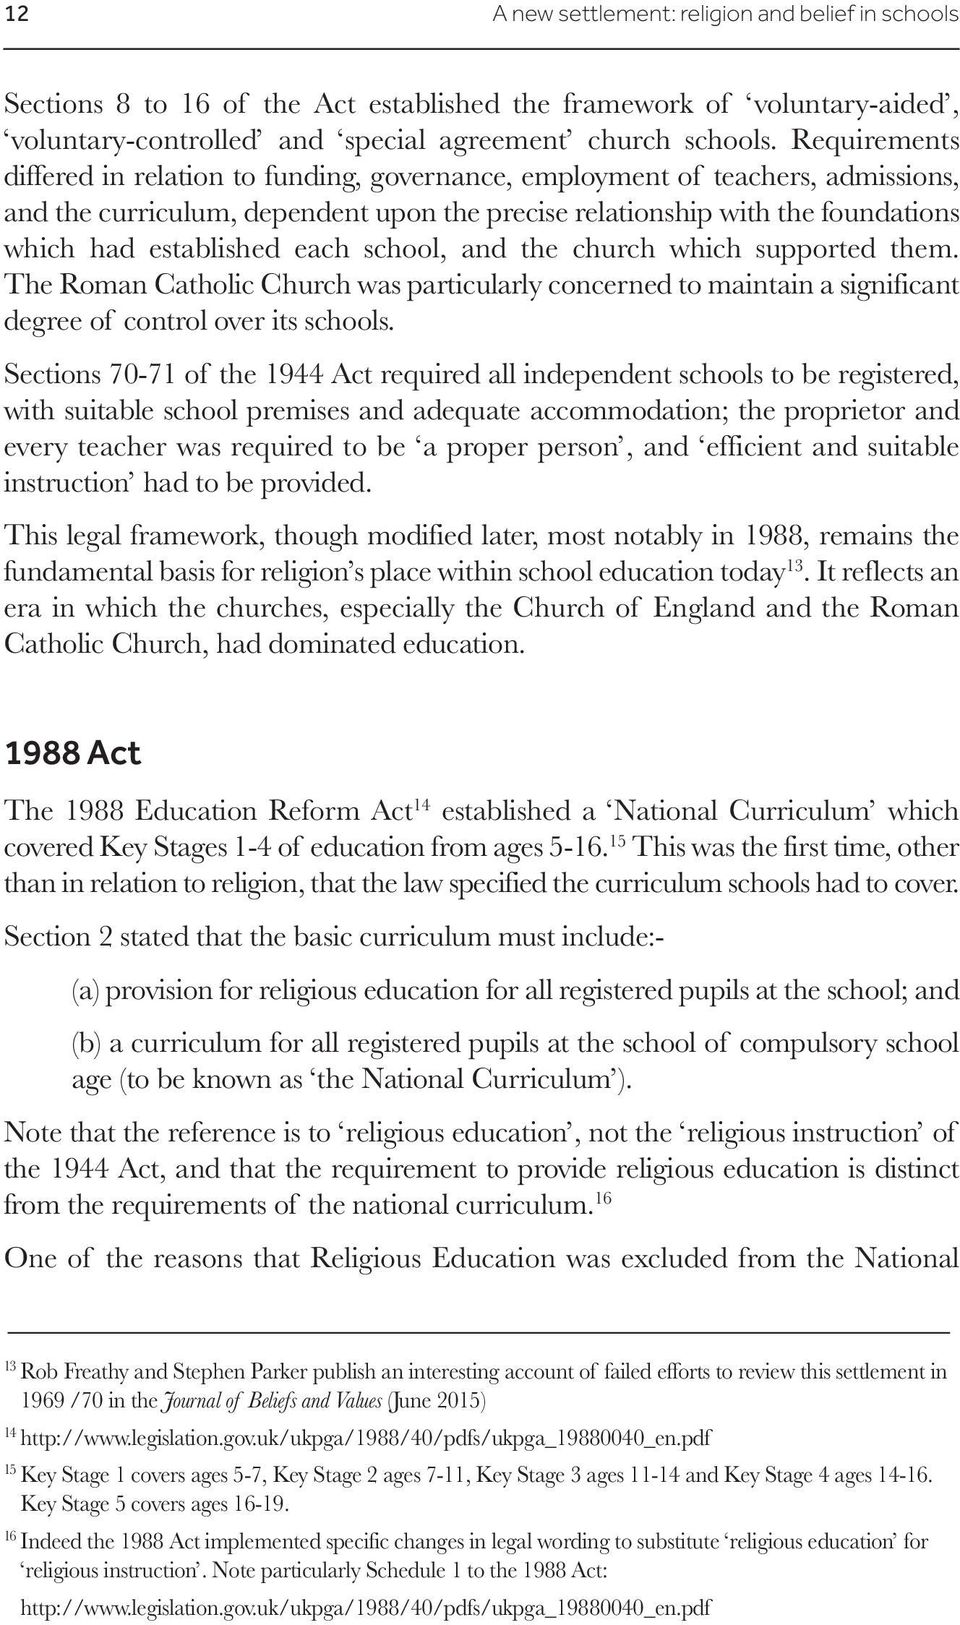 each school, and the church which supported them. The Roman Catholic Church was particularly concerned to maintain a significant degree of control over its schools.